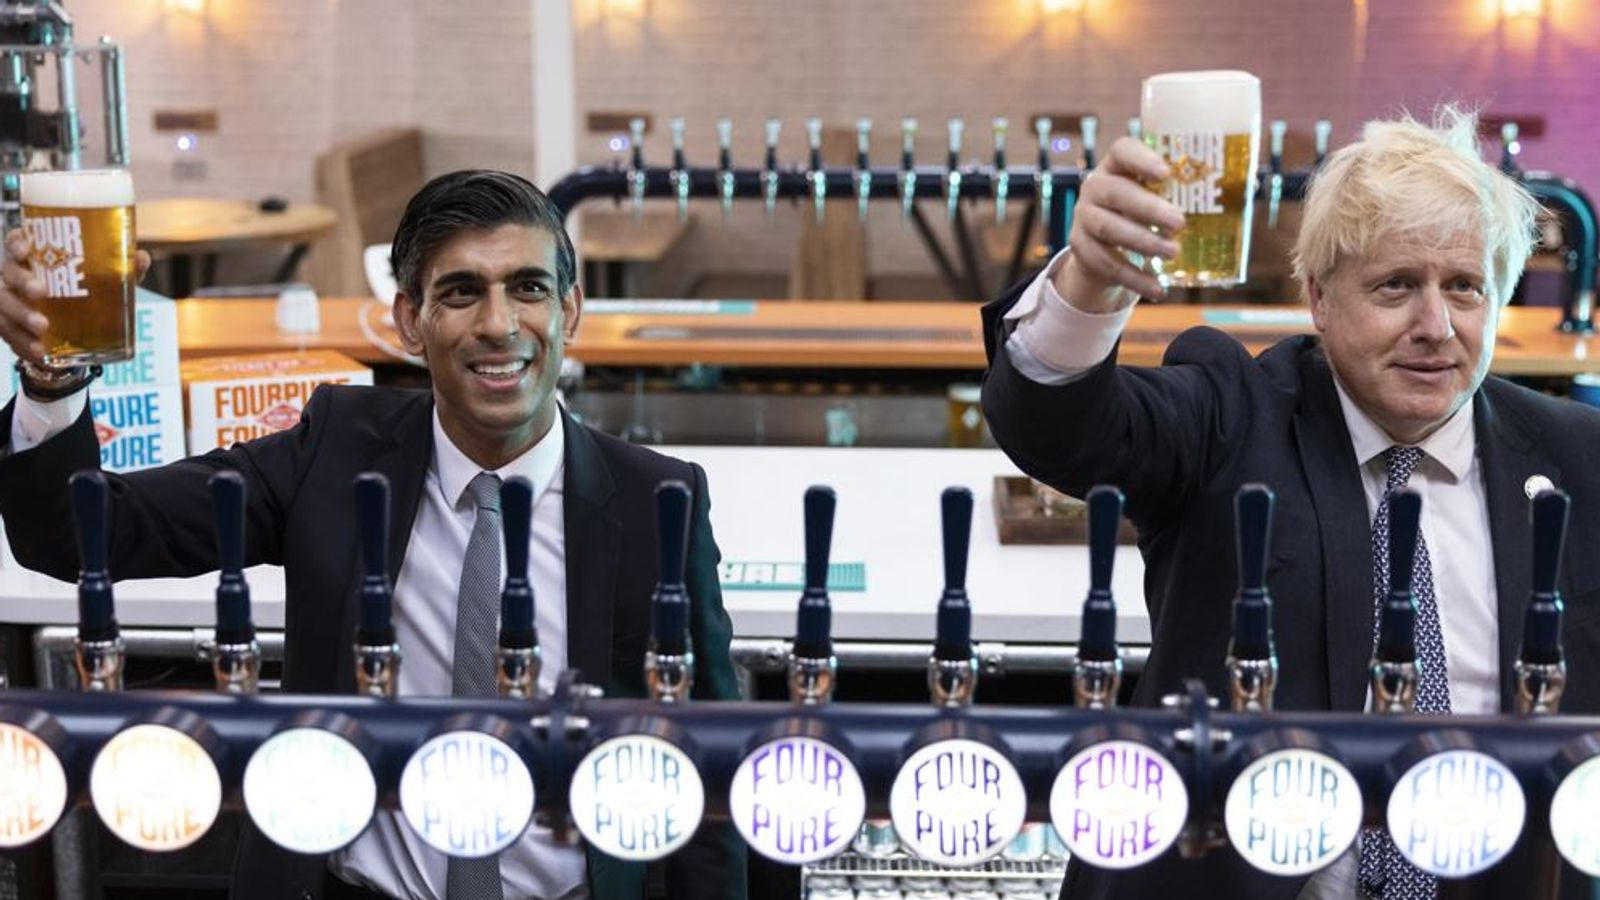 Budget 2021: Chancellor Rishi Sunak to face questions after vowing to build 'stronger economy'